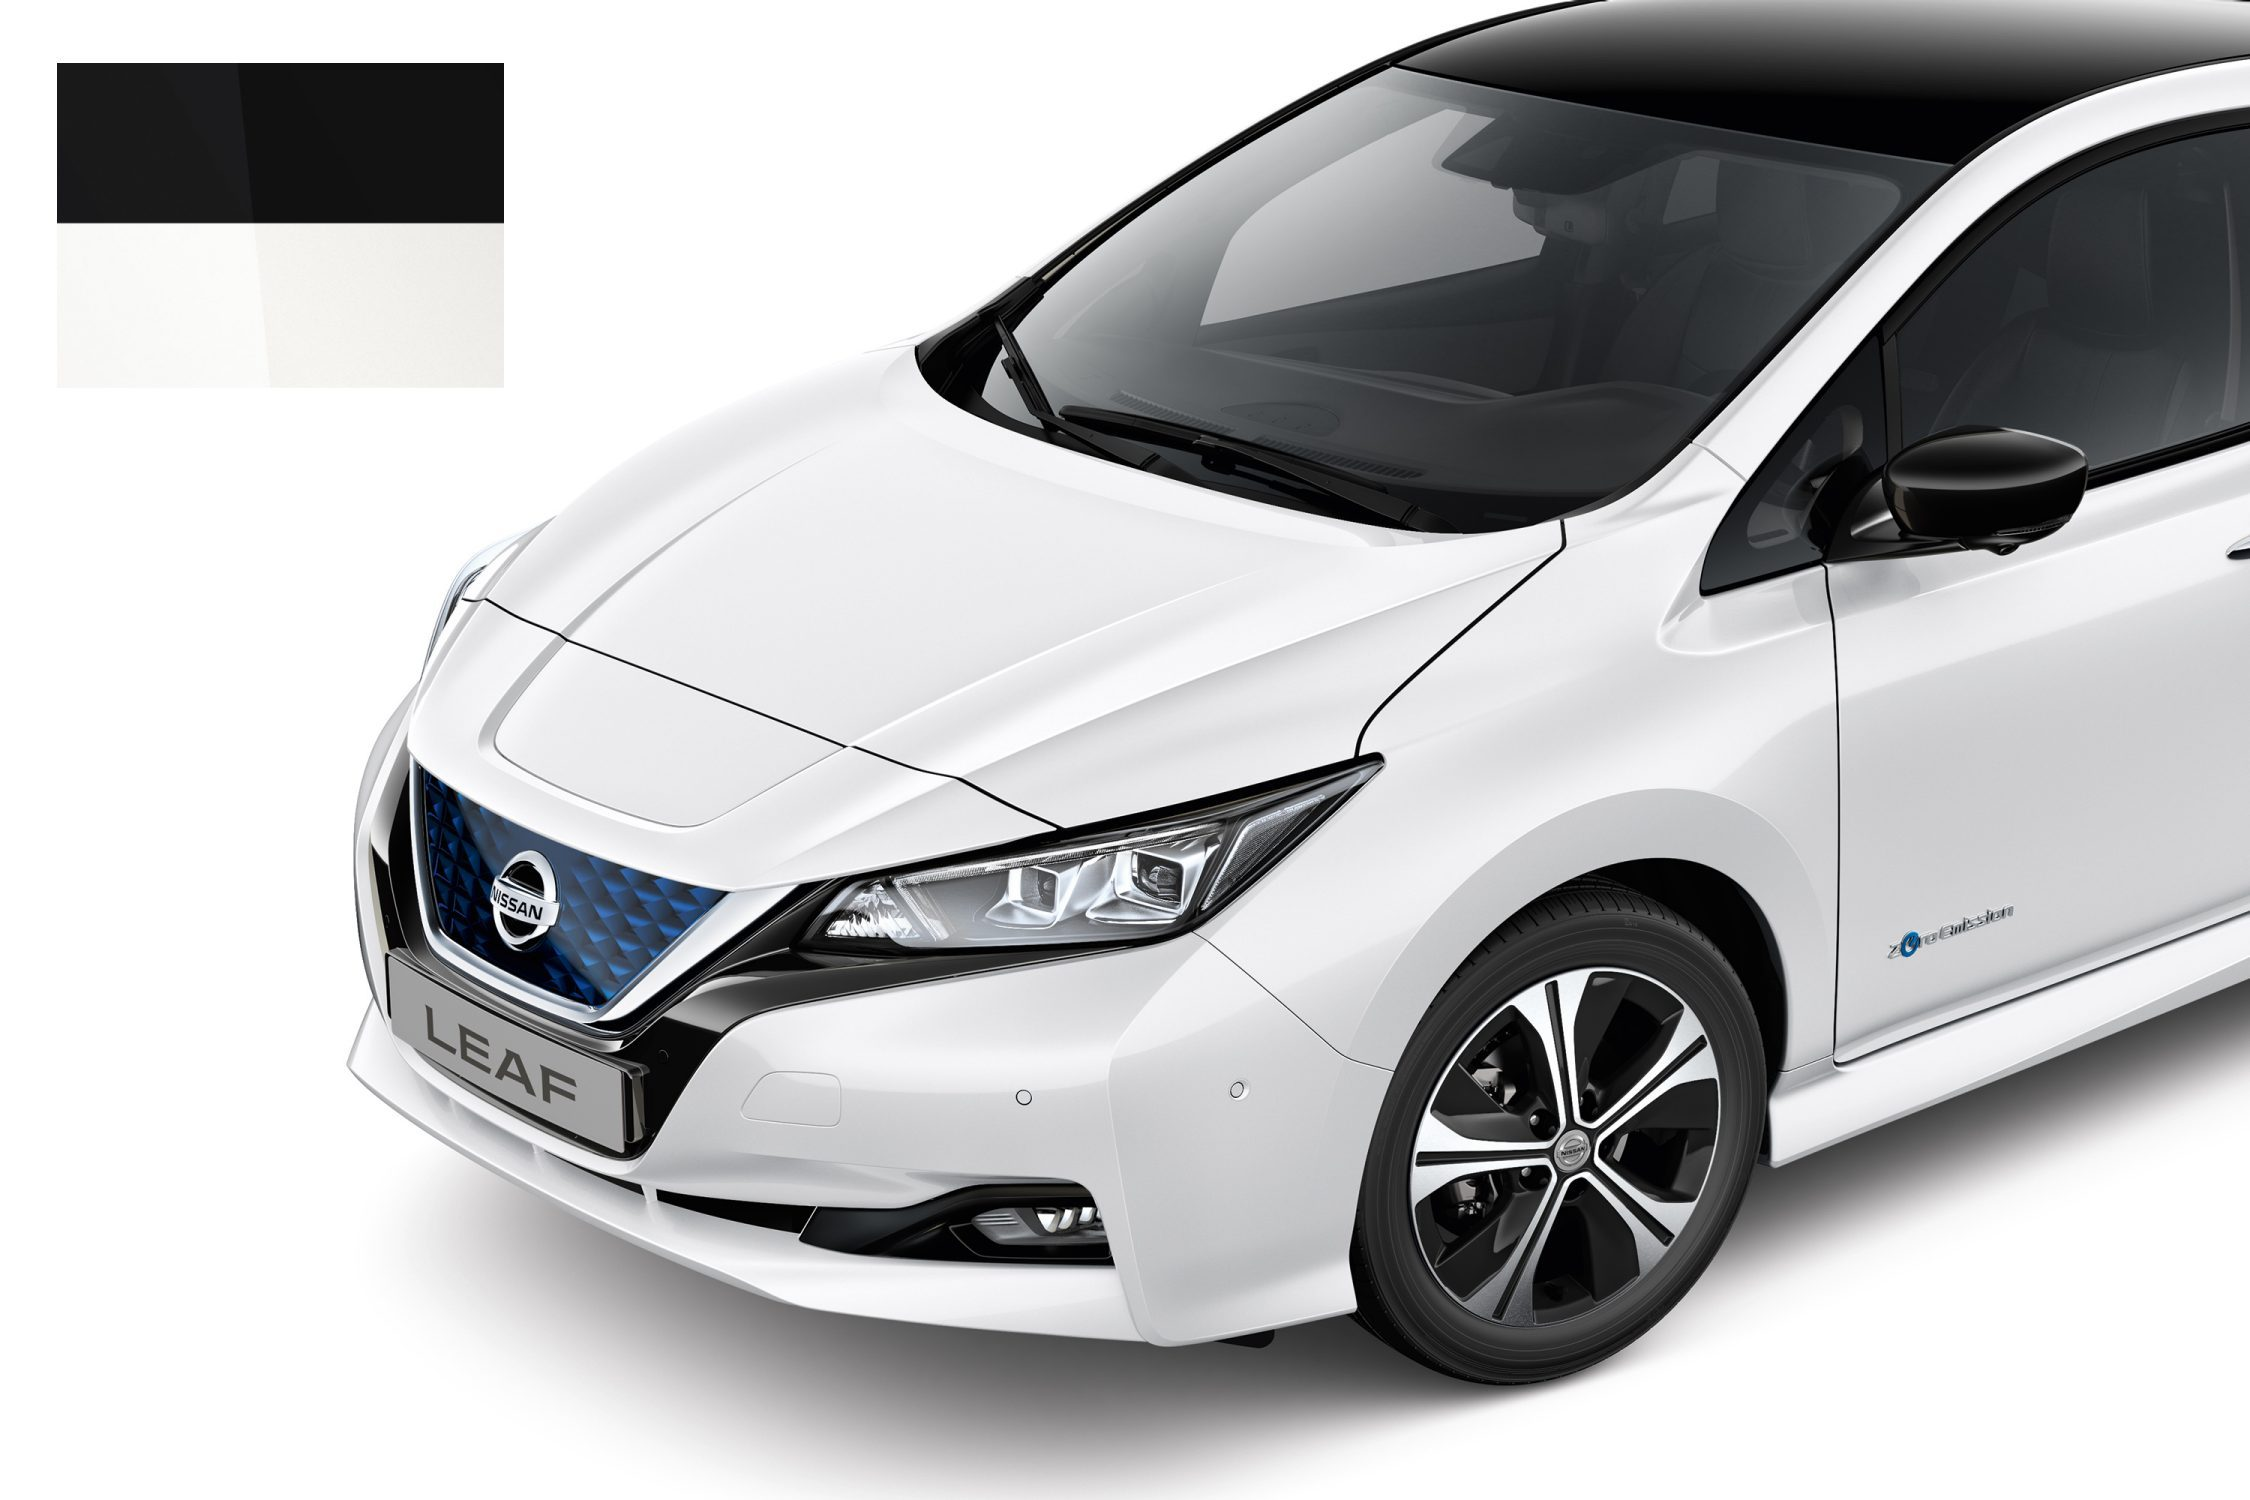 New Nissan LEAF Two Tone White & Black color sample